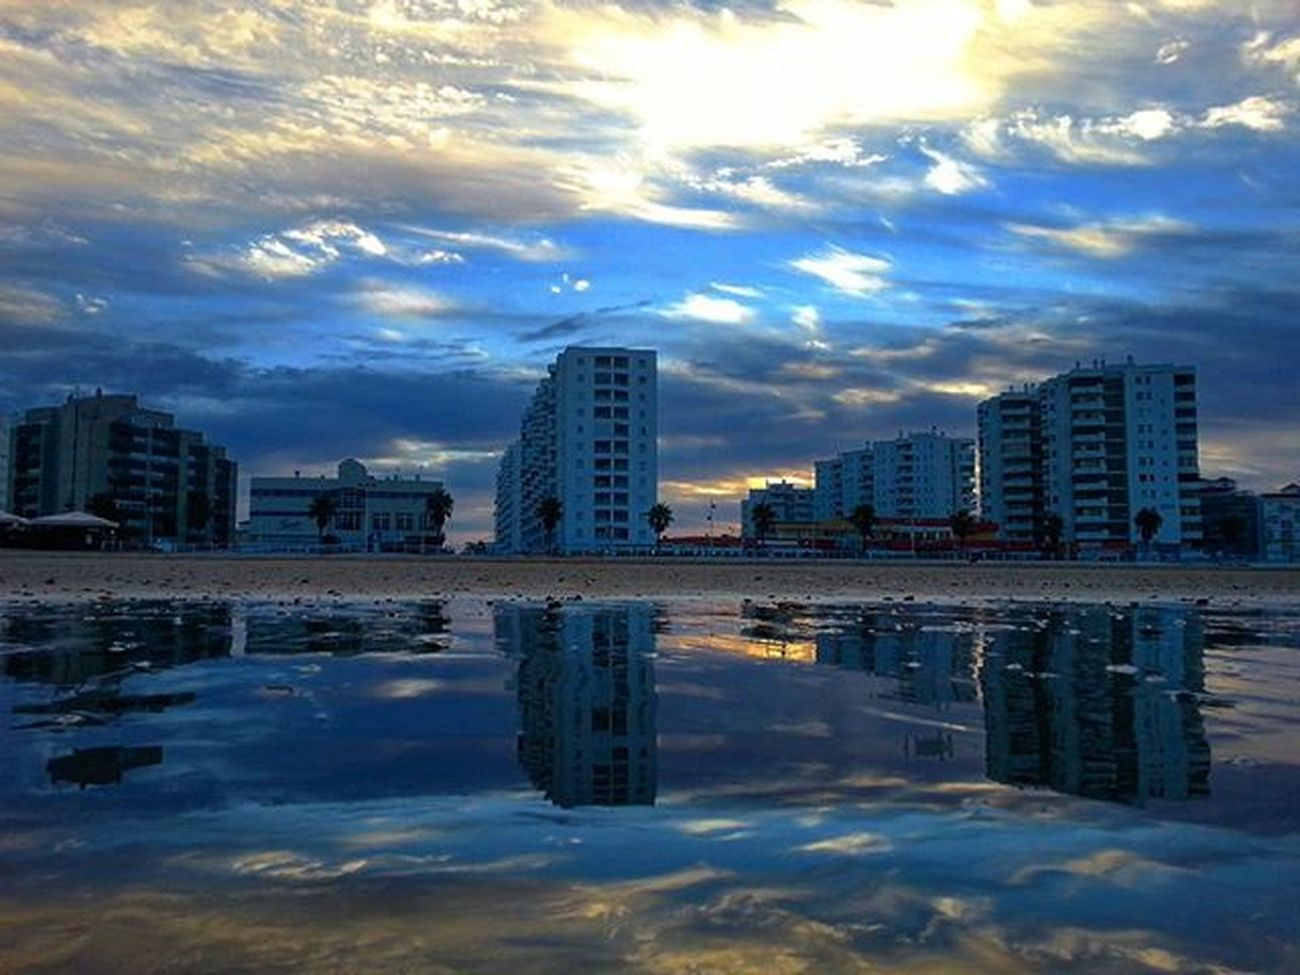 Reflejos del amanecer sobre la playa de Valdelagrana Elpuertodesantamaria Reflections Reflejos Clouds And Sky Enjoying Life Landscape_photography EyeEm Gallery Relaxing Sky Nubes Playa Your_worldcaptures Match_sky Total_sky Hdr_and_sunsets Loves_skyandsunsets Love_hdr_colour Cadizfornia Click_n_share